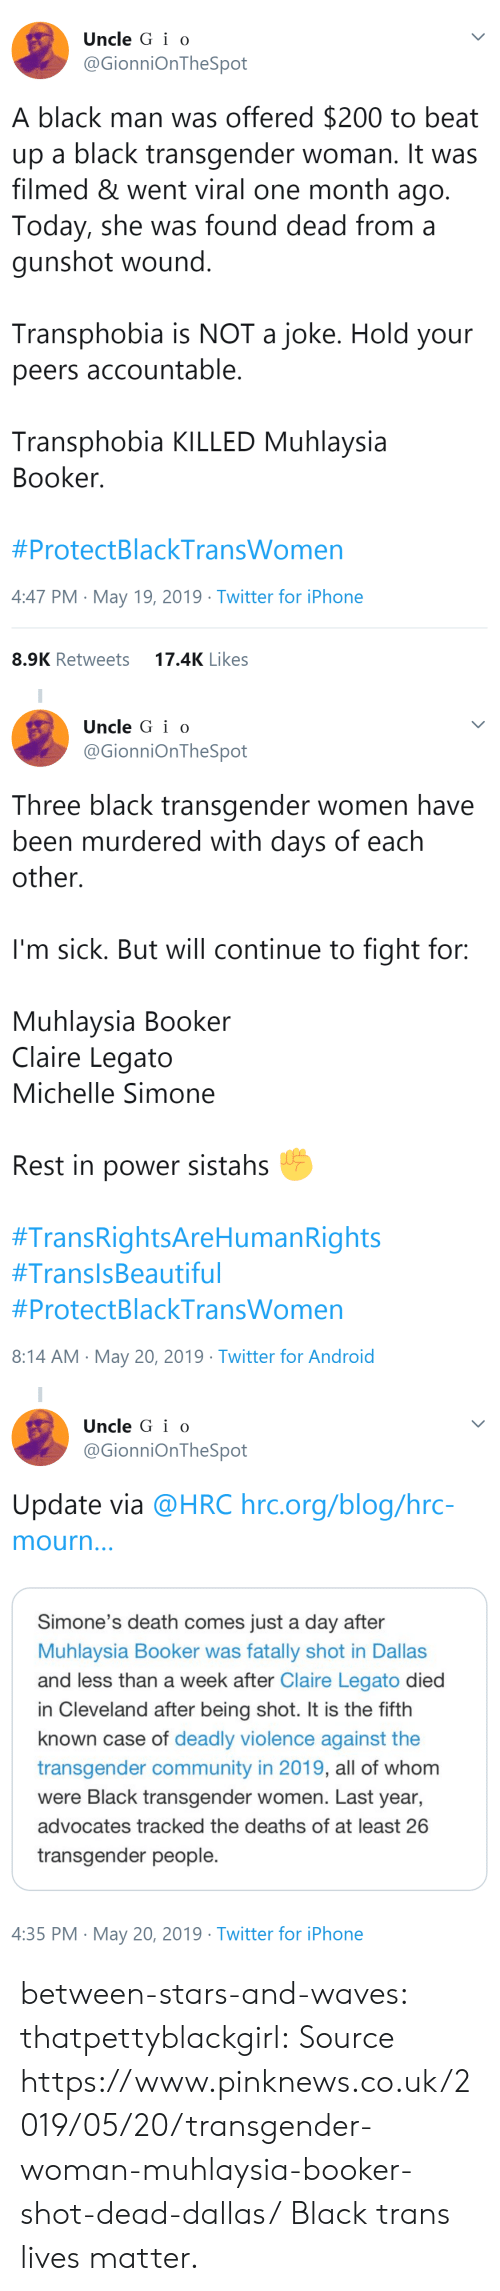 Im Sick: Uncle G i o  @GionniOnTheSpot  A black man was offered $200 to beat  up a black transgender woman. It was  filmed & went viral one month ago  Today, she was found dead from a  gunshot wound  Transphobia is NOT a joke. Hold your  peers accountable  Transphobia KILLED Muhlaysia  Booker  #ProtectBlackTransWomen  4:47 PM May 19, 2019 Twitter for iPhone  17.4K Likes  8.9K Retweets   Uncle G i o  @GionniOnTheSpot  Three black transgender women have  been murdered with days of each  other.  I'm sick. But will continue to fight for:  Muhlaysia Booker  Claire Legato  Michelle Simone  Rest in power sistahs  #TransRightsAreHumanRights  #TransisBeautiful  #ProtectBlackTransWomen  8:14 AM May 20, 2019 Twitter for Android   Uncle G i o  @GionniOnTheSpot  Update via @HRC hrc.org/blog/hrc-  mourn  Simone's death comes just a day after  Muhlaysia Booker was fatally shot in Dallas  and less than a week after Claire Legato died  in Cleveland after being shot. It is the fifth  known case of deadly violence against the  transgender community in 2019, all of whom  were Black transgender women. Last year,  advocates tracked the deaths of at least 26  transgender people.  4:35 PM May 20, 2019 Twitter for iPhone between-stars-and-waves: thatpettyblackgirl:   Source   https://www.pinknews.co.uk/2019/05/20/transgender-woman-muhlaysia-booker-shot-dead-dallas/   Black trans lives matter.